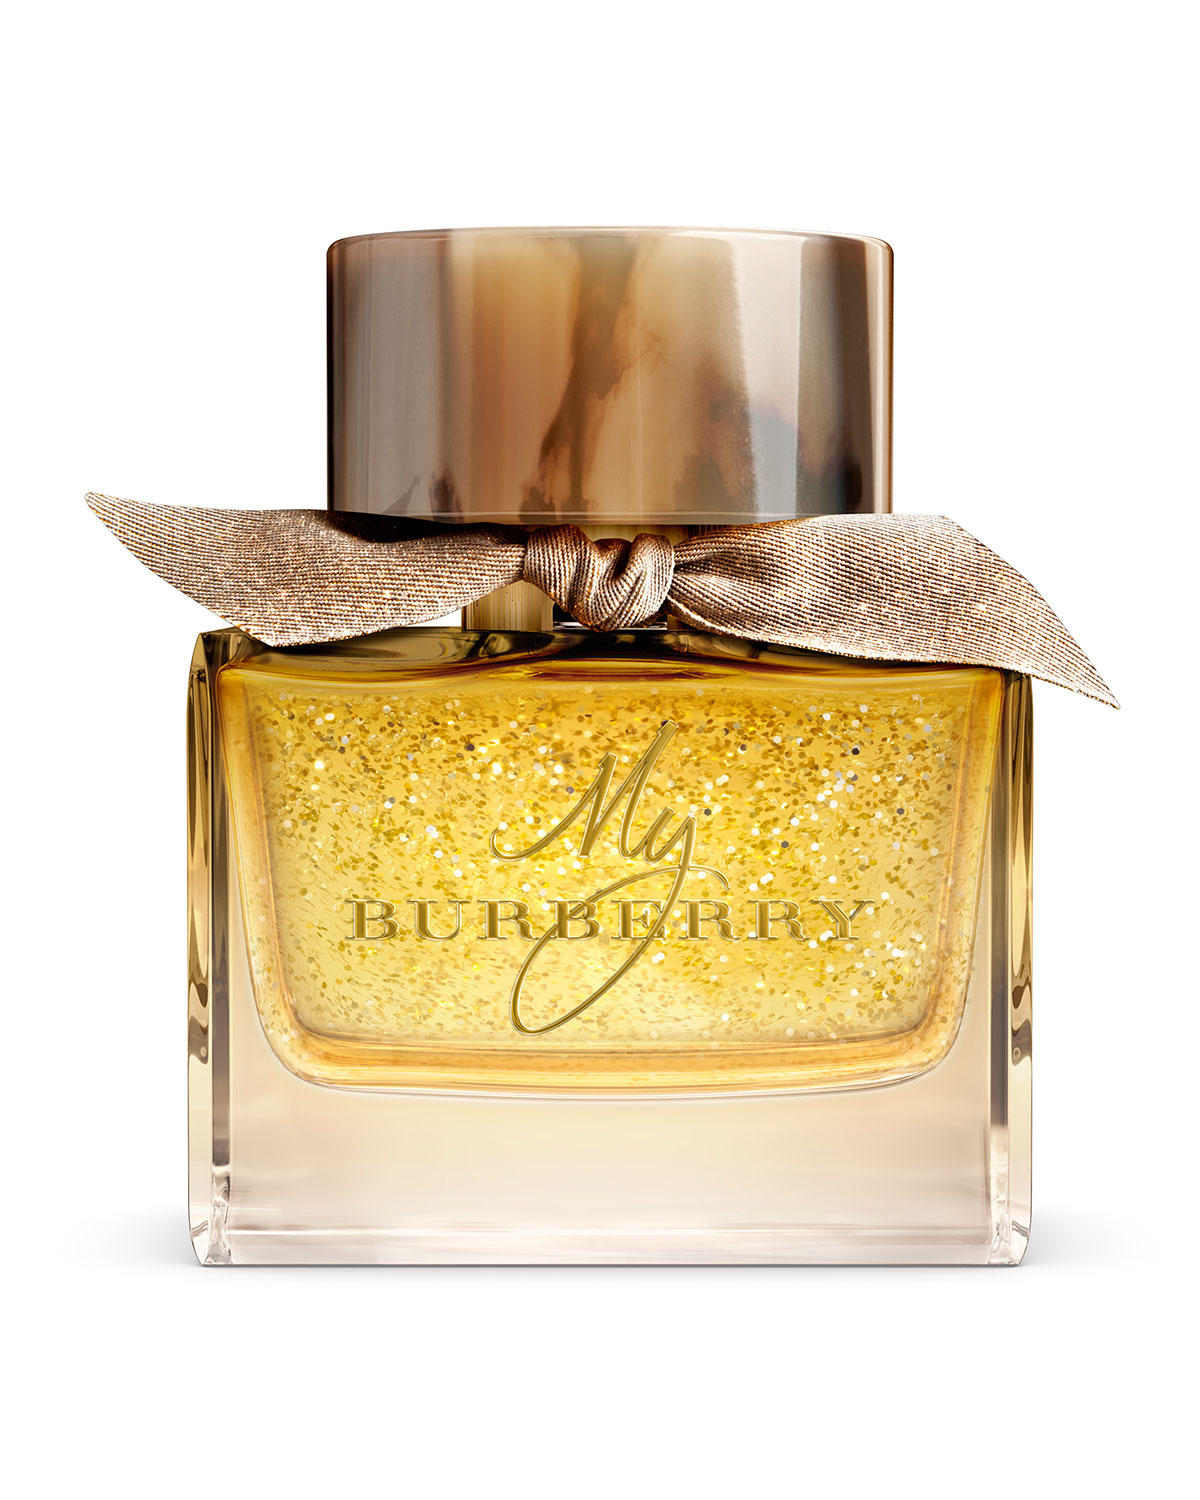 New Release Burberry launched New Limited Edition My Burberry Festive Eau de Parfum